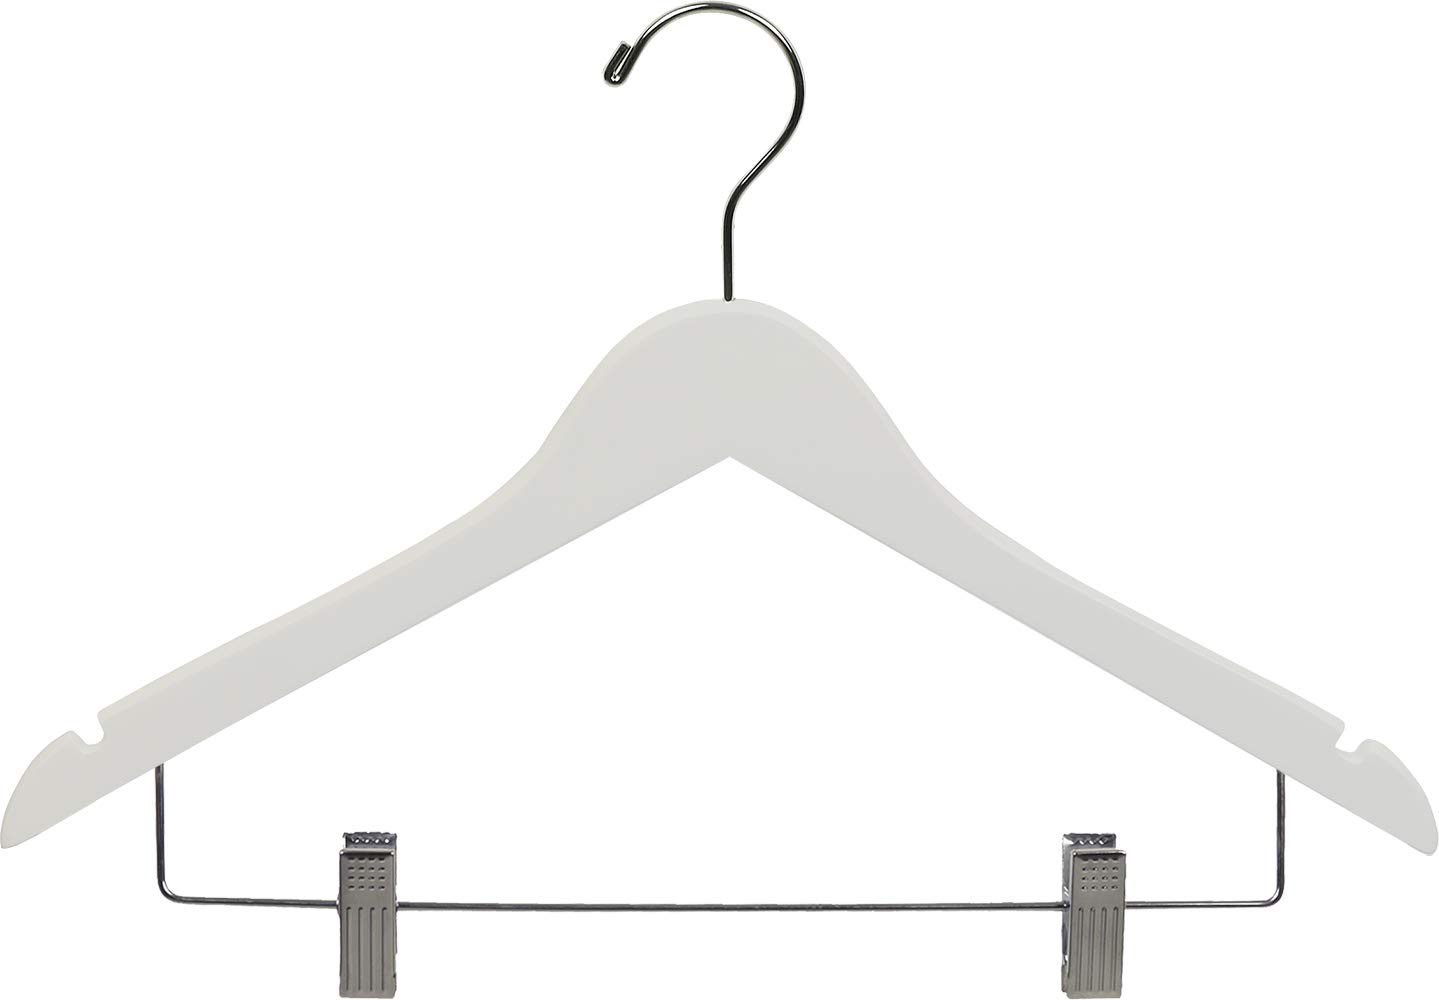 White Wood Combo Hanger w/ Adjustable Cushion Clips, Box of 25 Space Saving 17 Inch Flat Wooden Hangers w/ Chrome Swivel Hook & Notches for Shirt Jacket or Dress by The Great American Hanger Company by The Great American Hanger Company